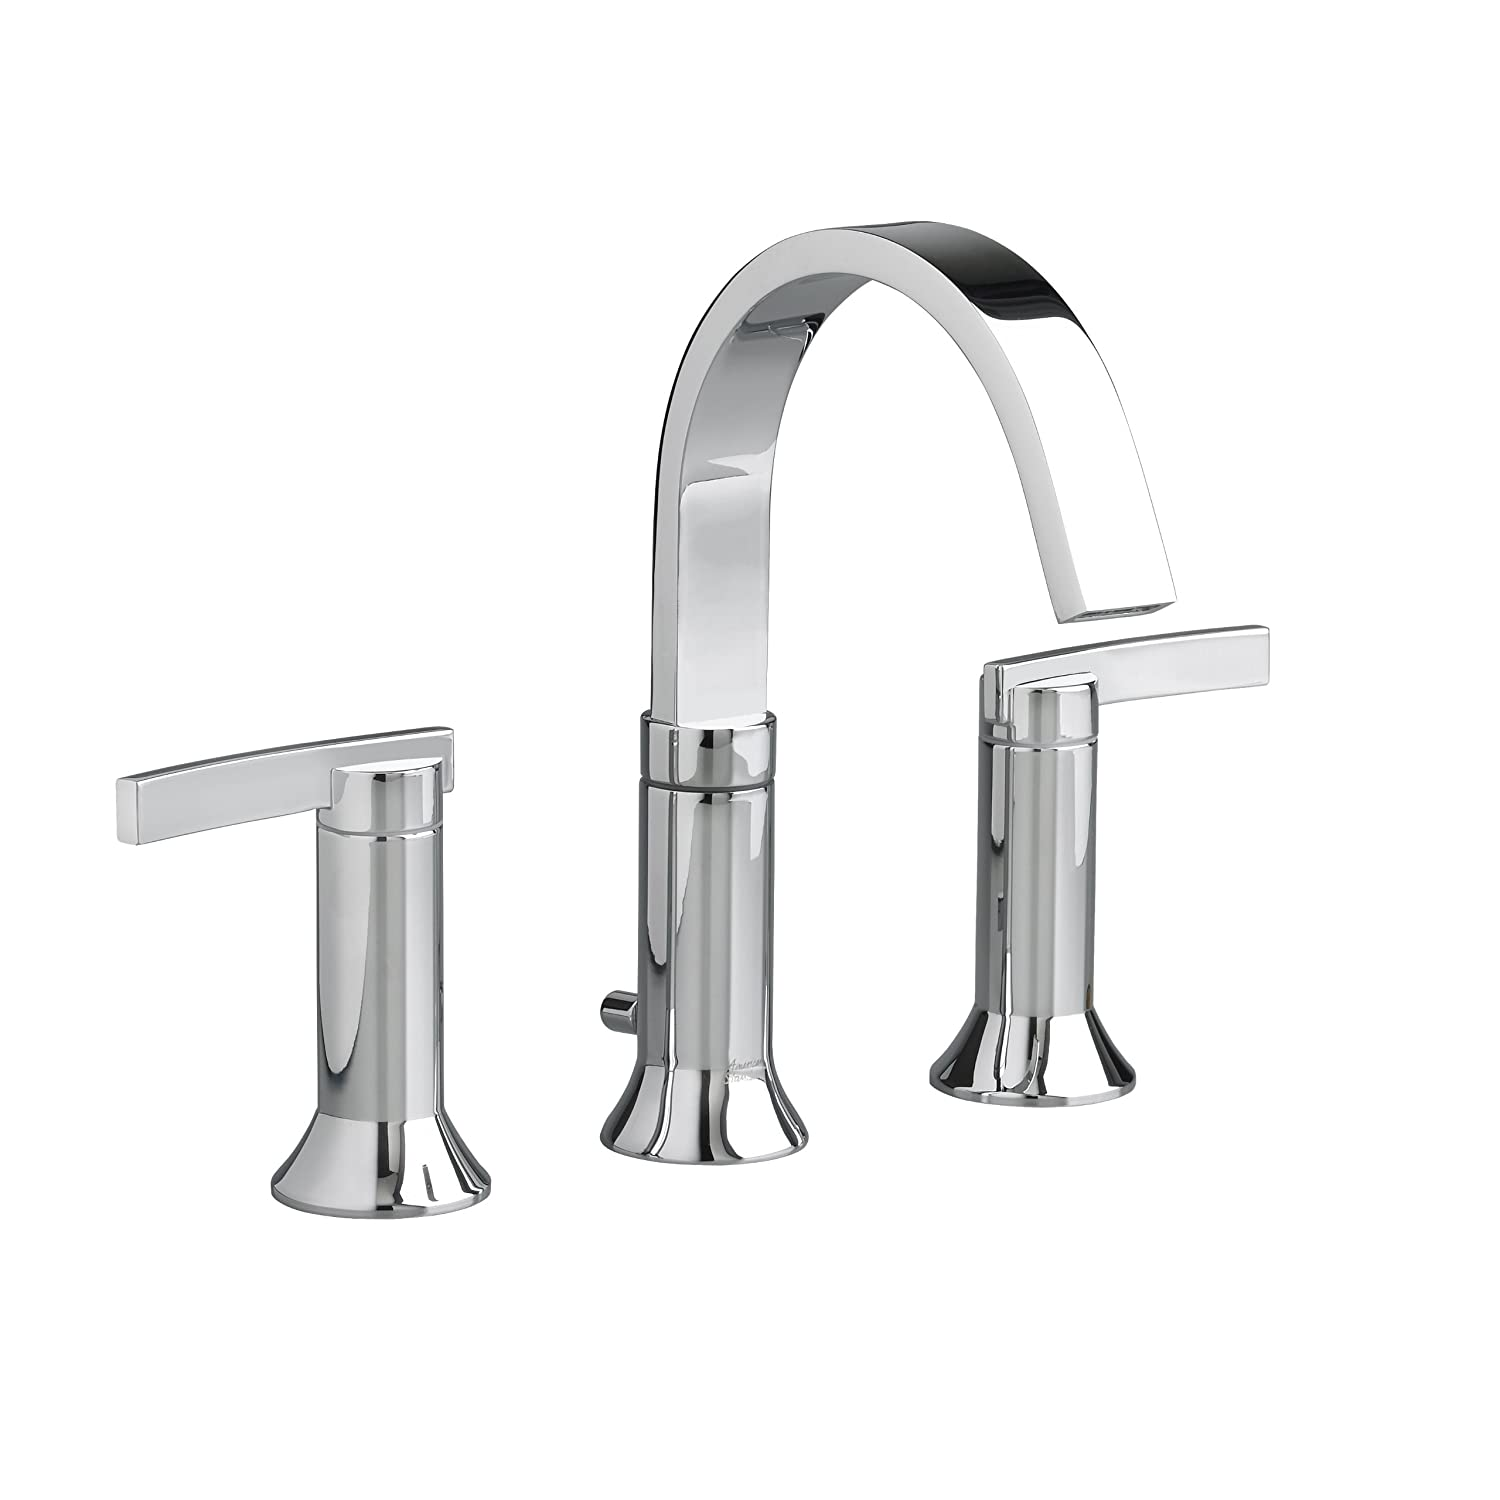 American Standard 7430.801.002 Berwick 2 Lever Handle Widespread Faucet, Polished Chrome